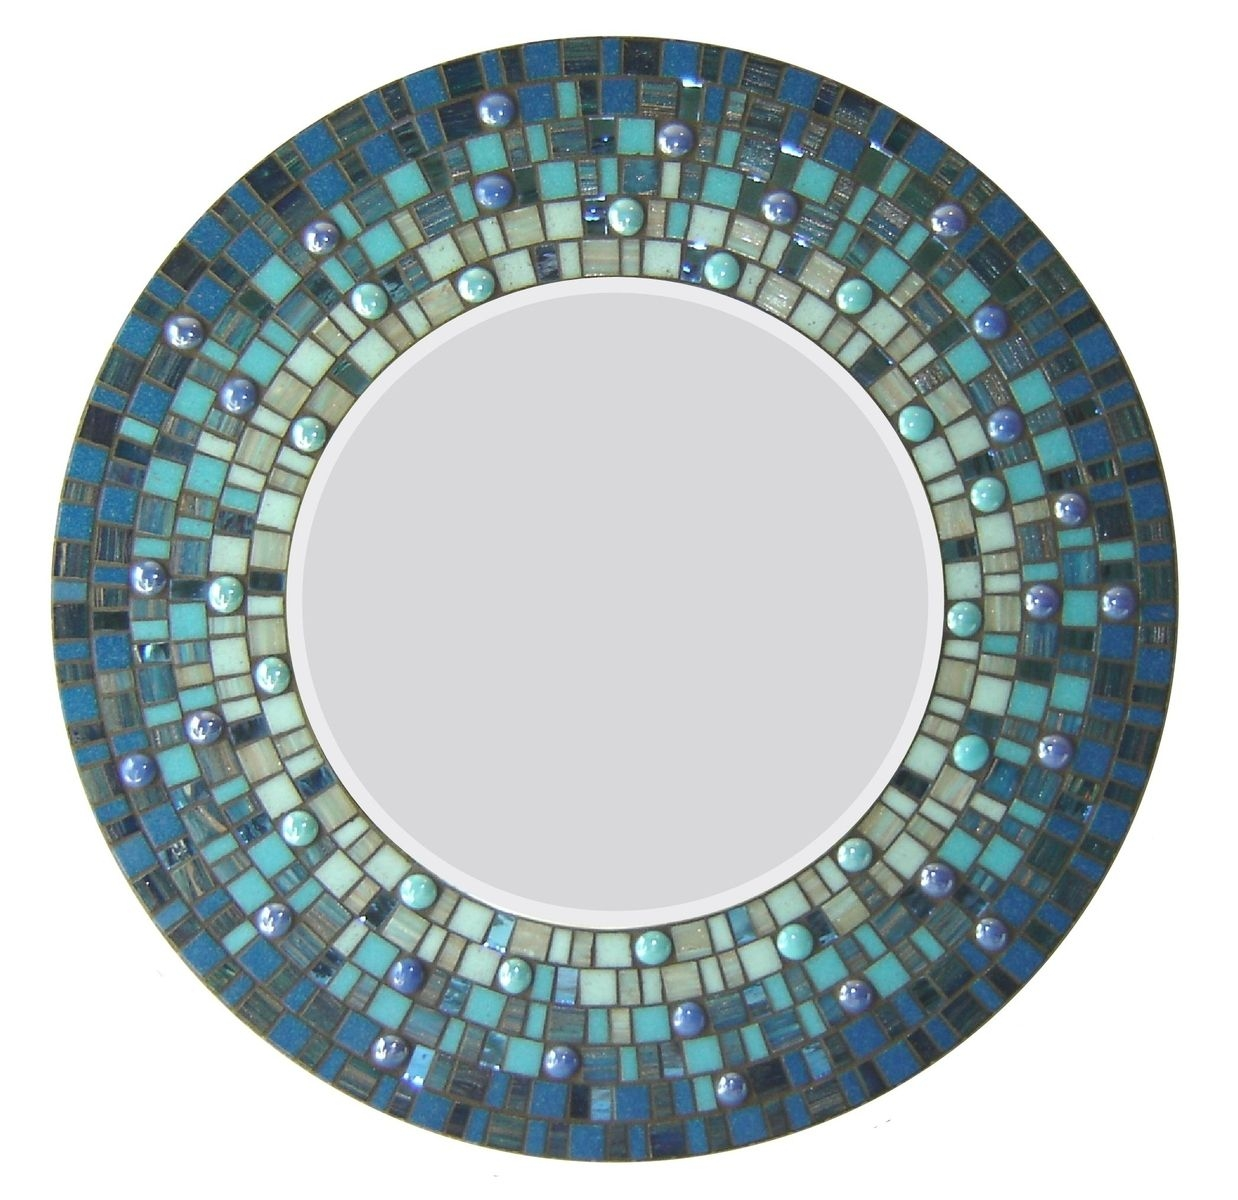 Featured Image of Round Mosaic Wall Mirror